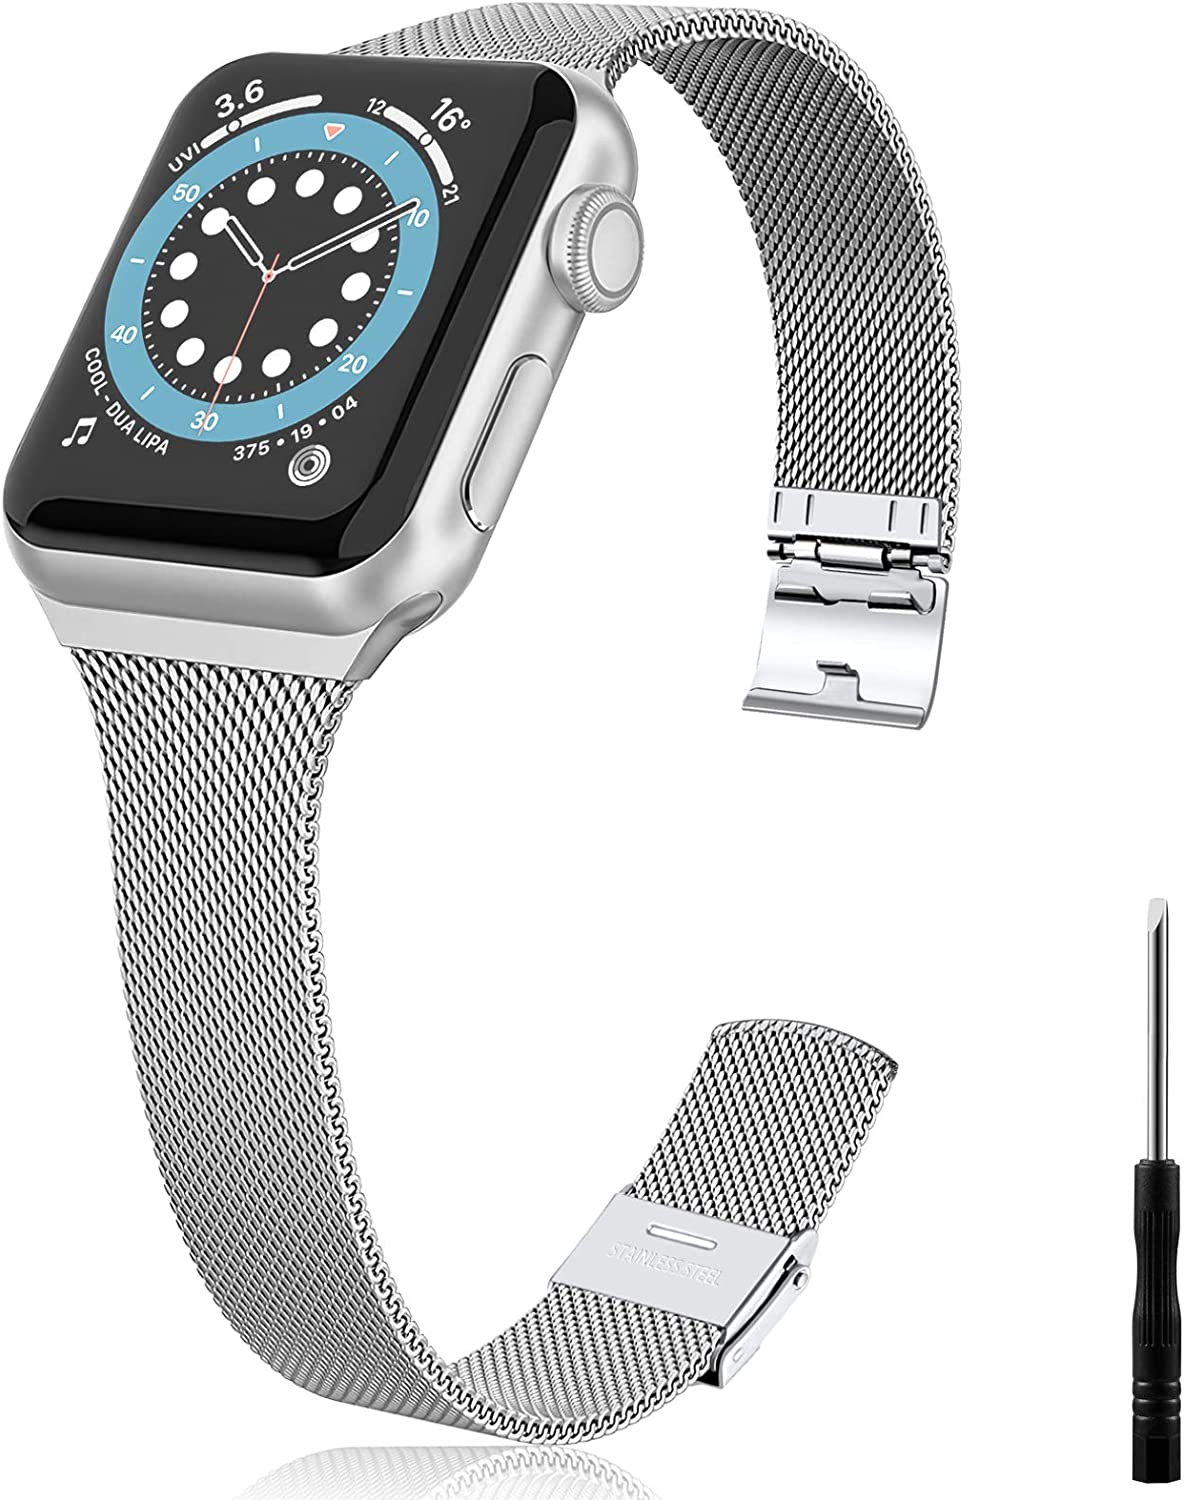 Vcegari Metal Band Compatible with Apple Watch 38mm 40mm Women Men, Slim Narrow Stainless Steel Replacement Wristband Ajustable Strap for iWatch SE & Series 6 5 4 3 2 1, Silver